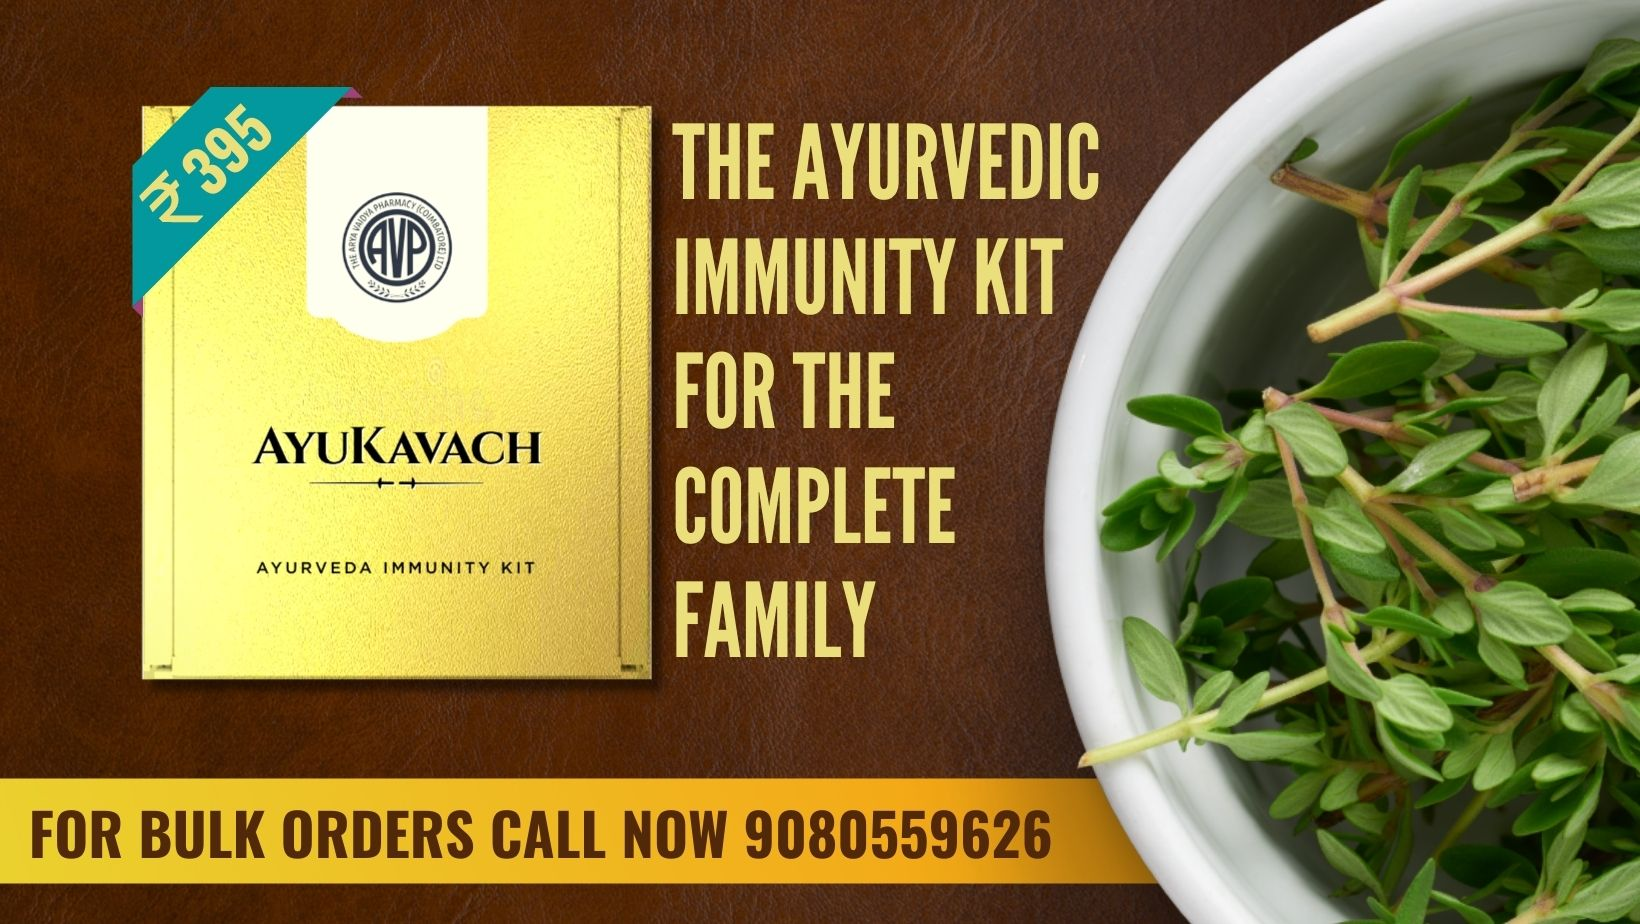 Aayurvedic Immunity Kit for the complete Family